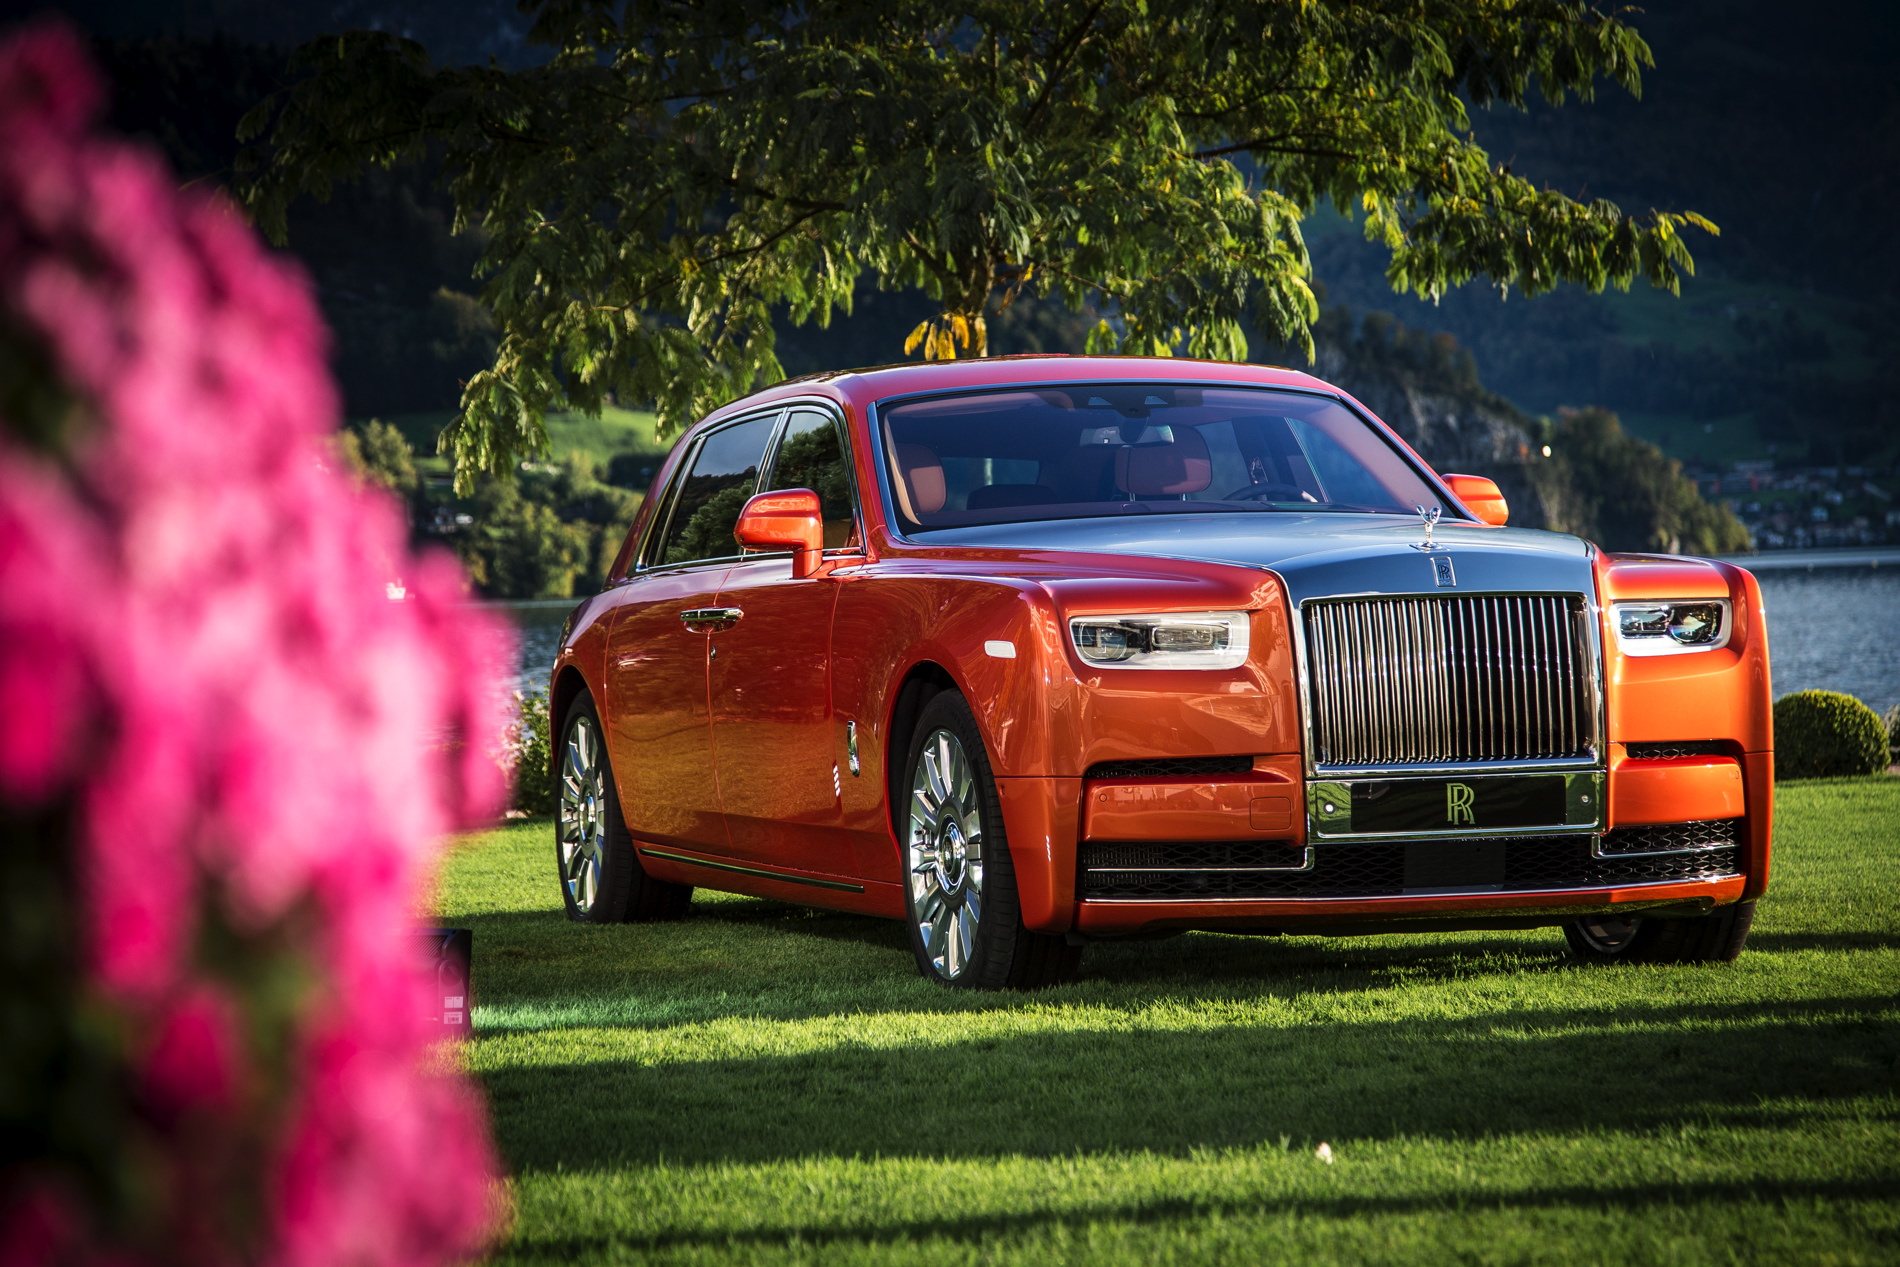 Rolls royce phantom photo - 10